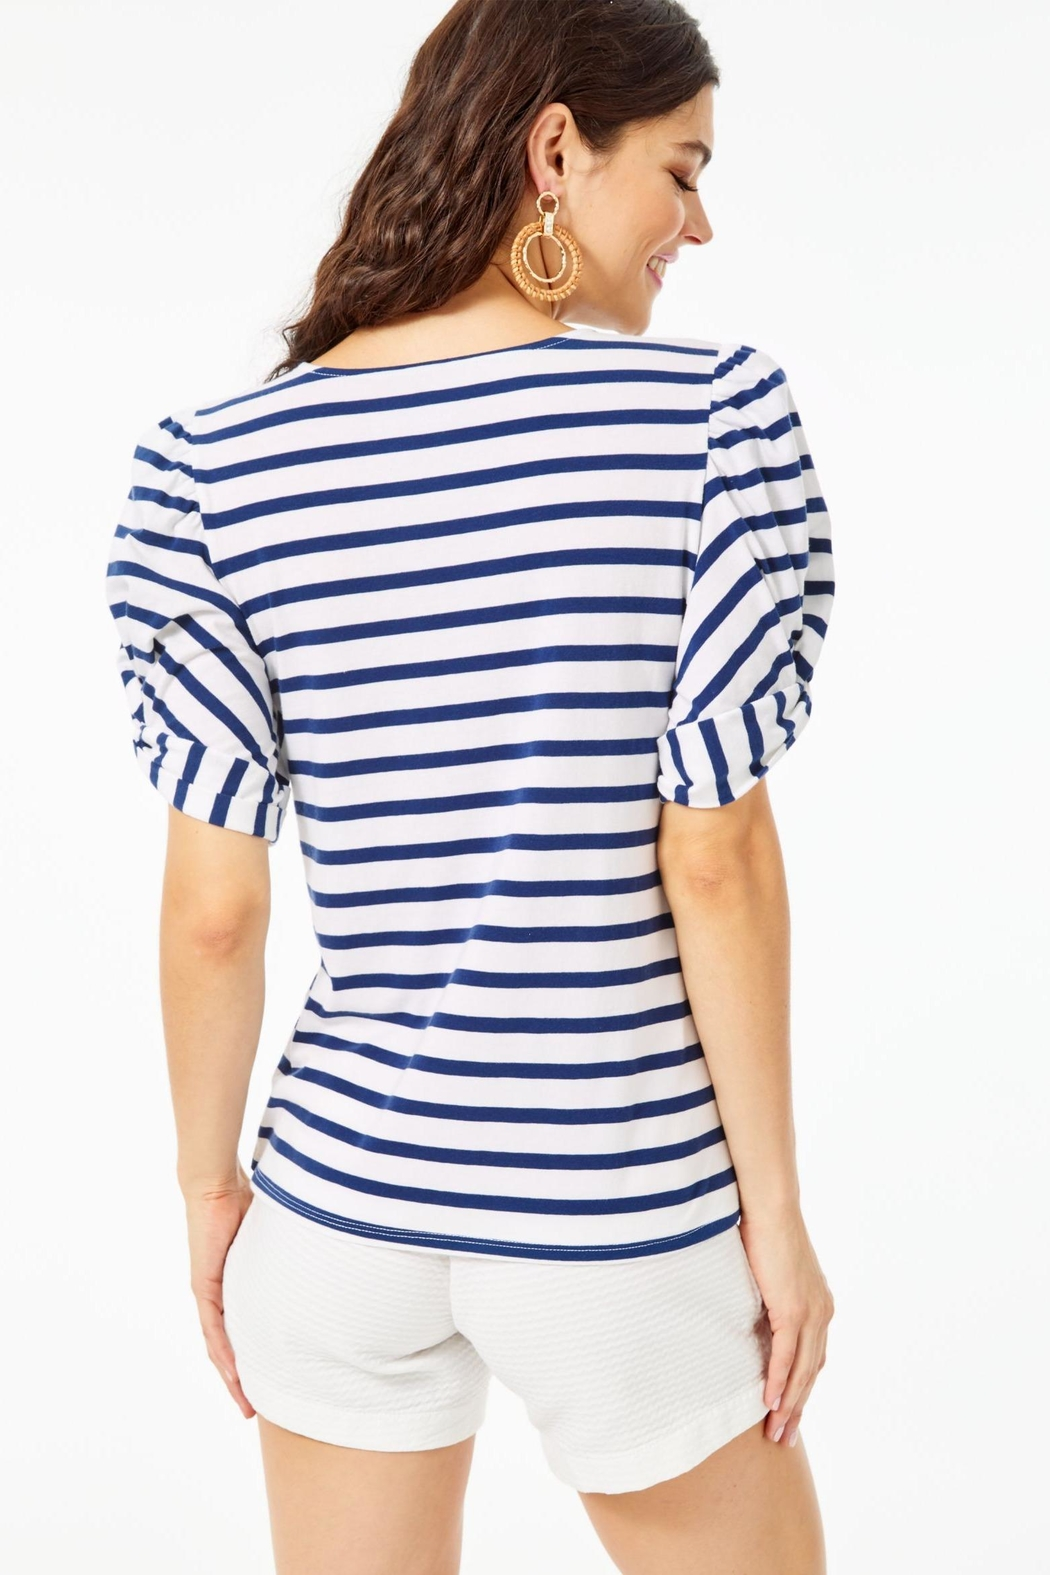 Lilly Pulitzer Elisabette Top - Front Full Image